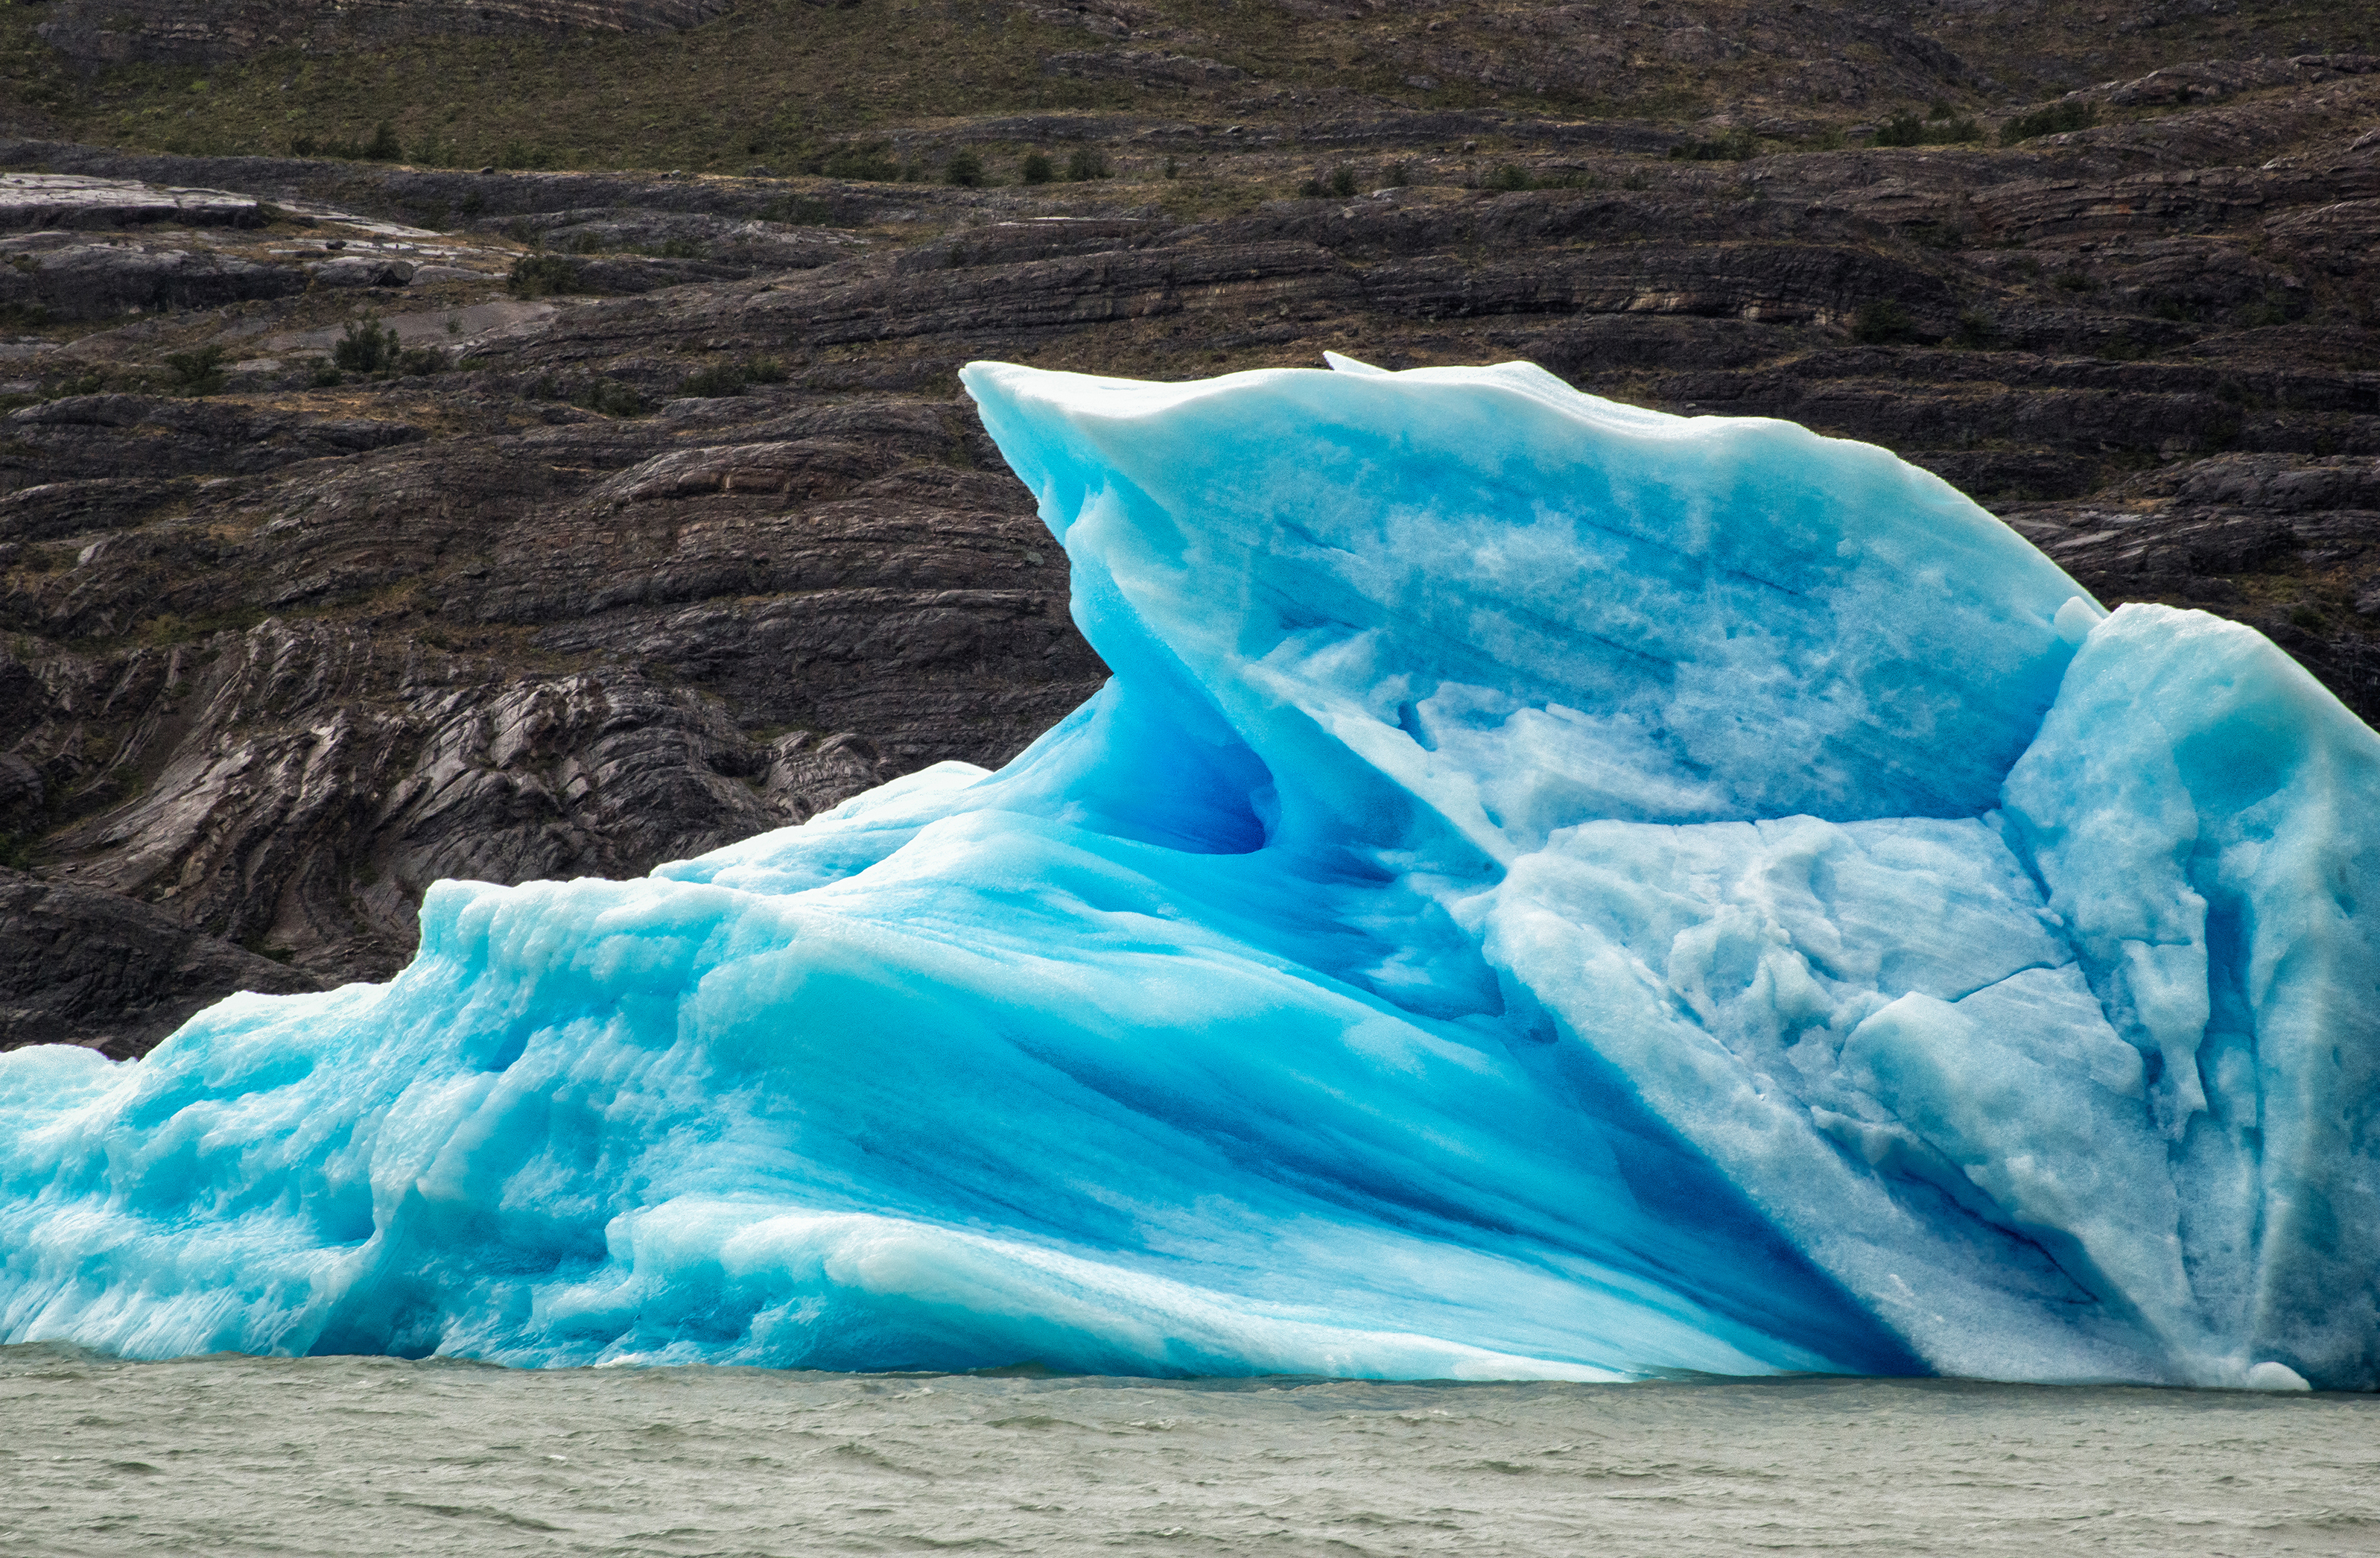 Textures of Ice-El Calafate